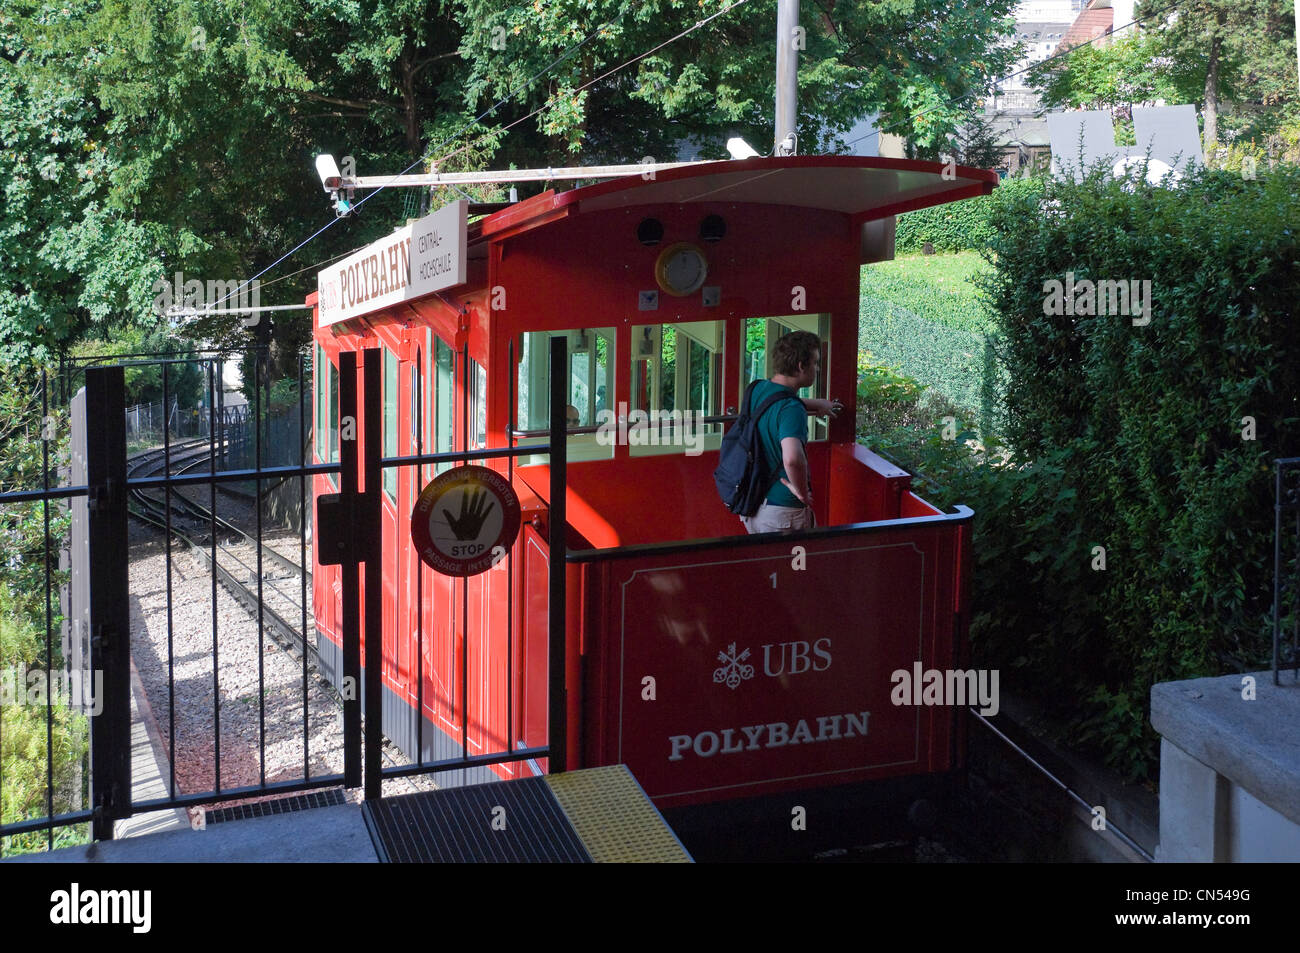 Horizontal view of the UBS Polybahn funicular railway at Eidgenössisches Polytechnikum station on a sunny day. Stock Photo